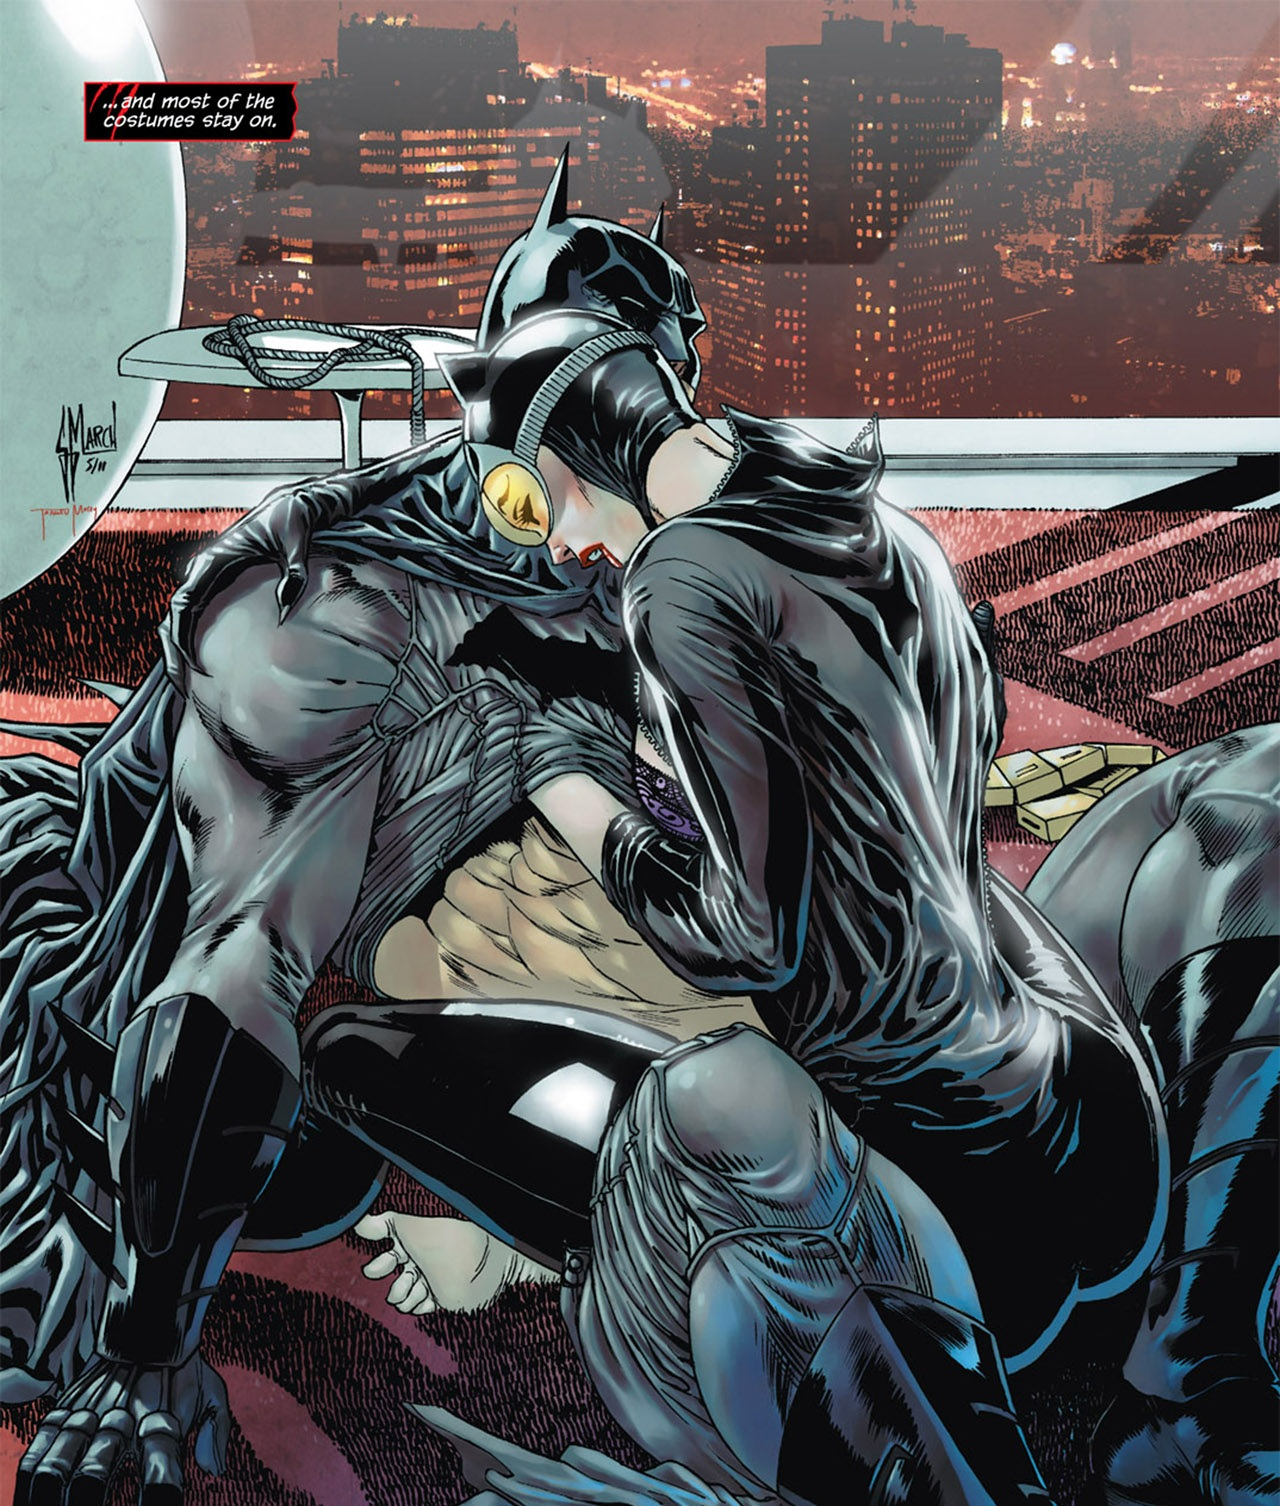 Batman and Catwoman are faced with some big life choices ...